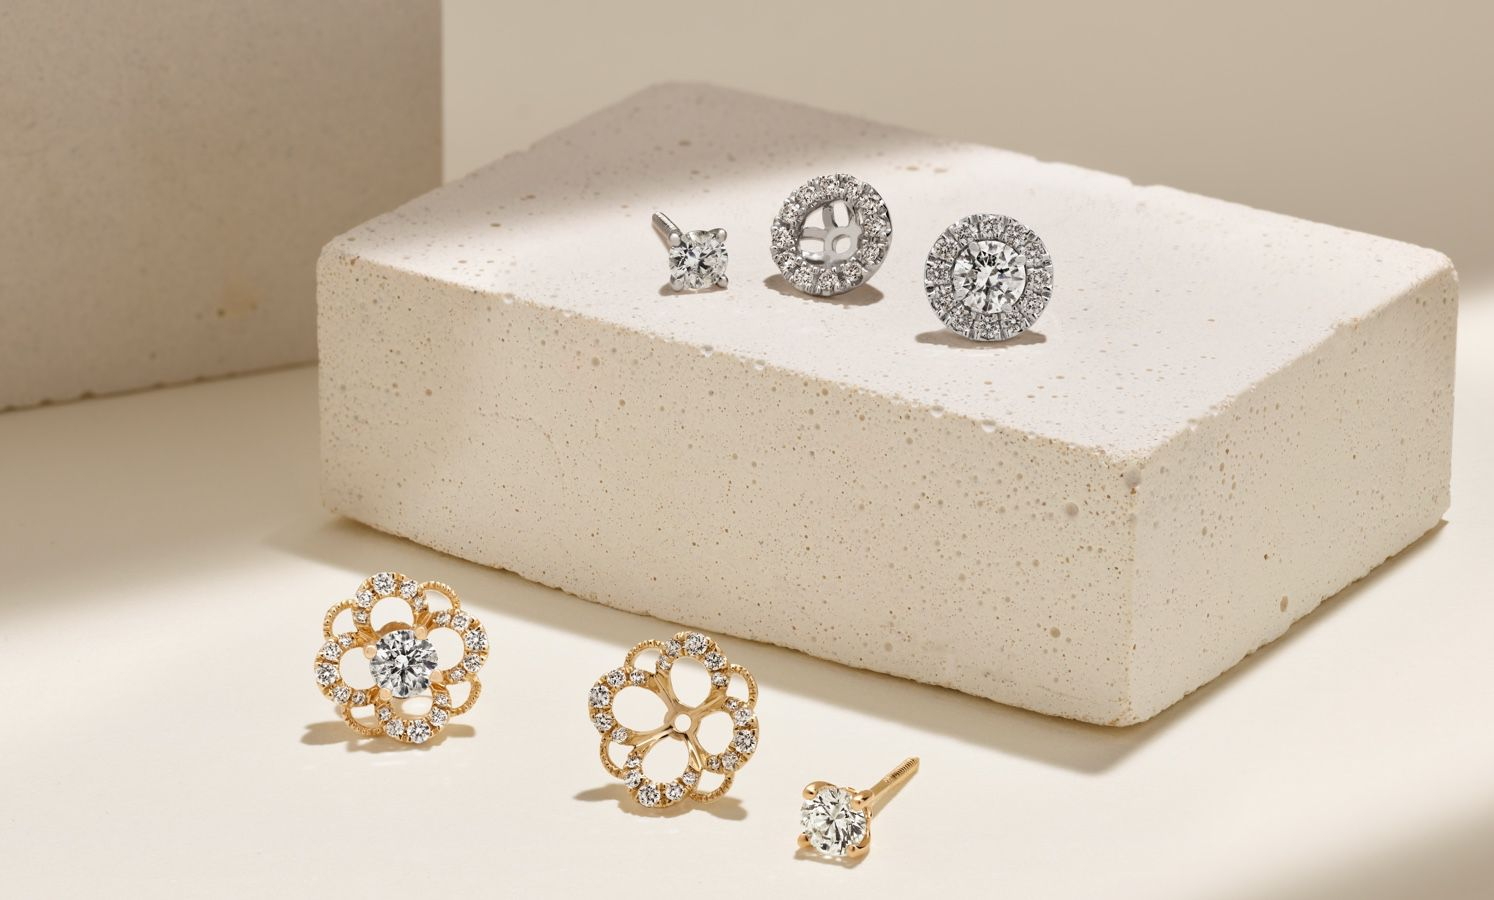 A collection of diamond studs and earring jackets